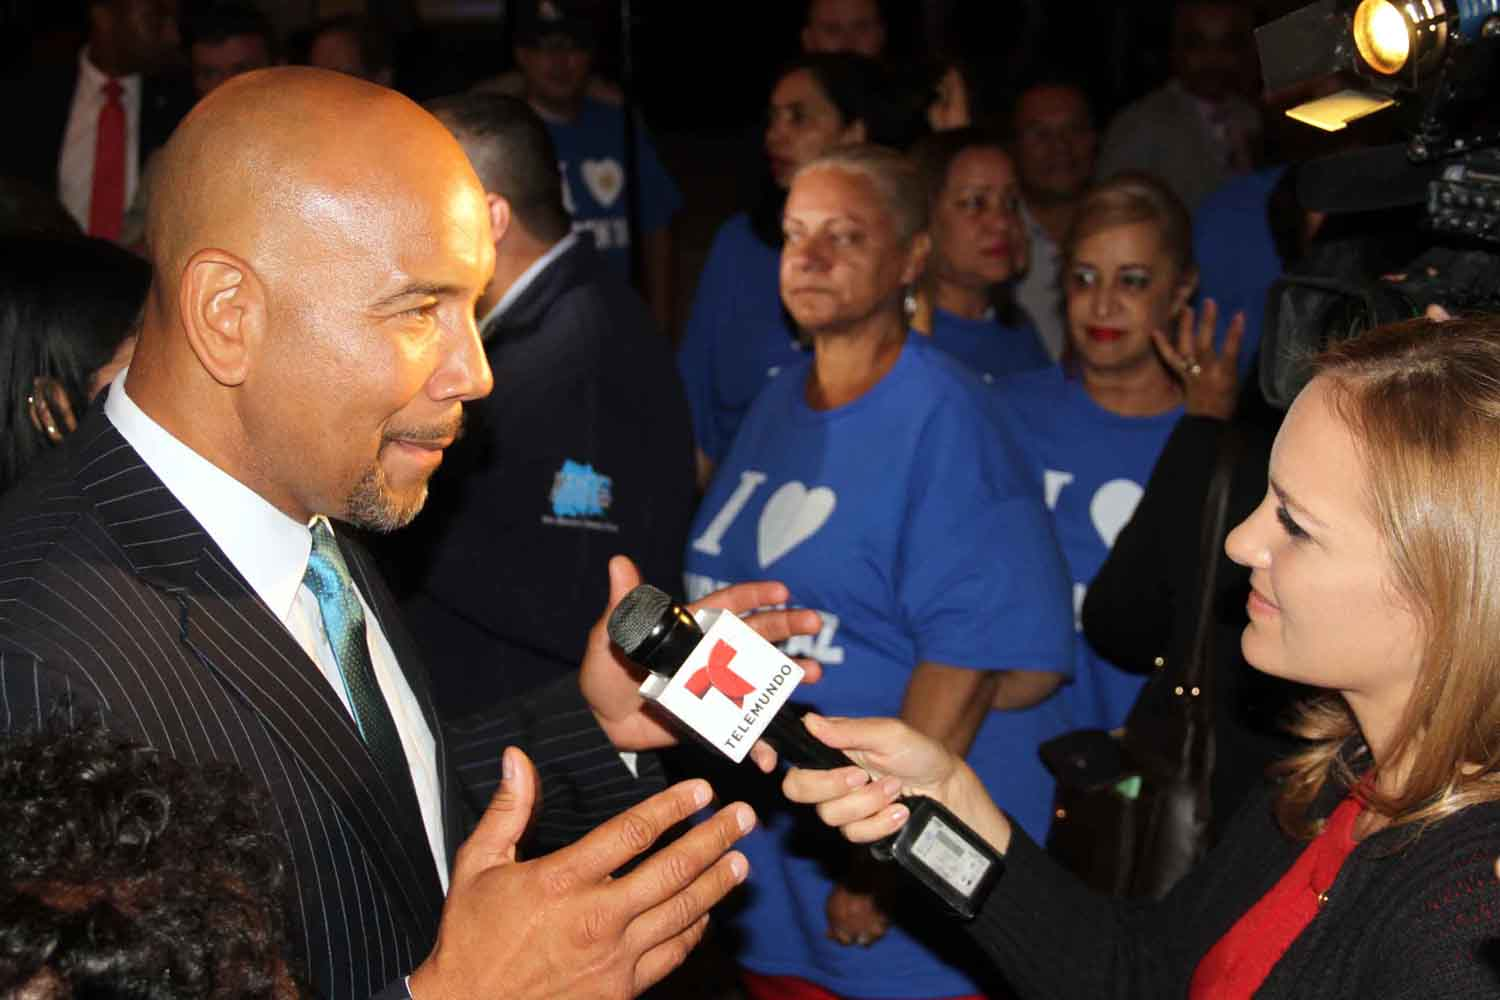 Borough President Ruben Diaz, Jr., gives a television interview during celebration at Maestro's Caterers in Morris Park.--Photo by David Greene